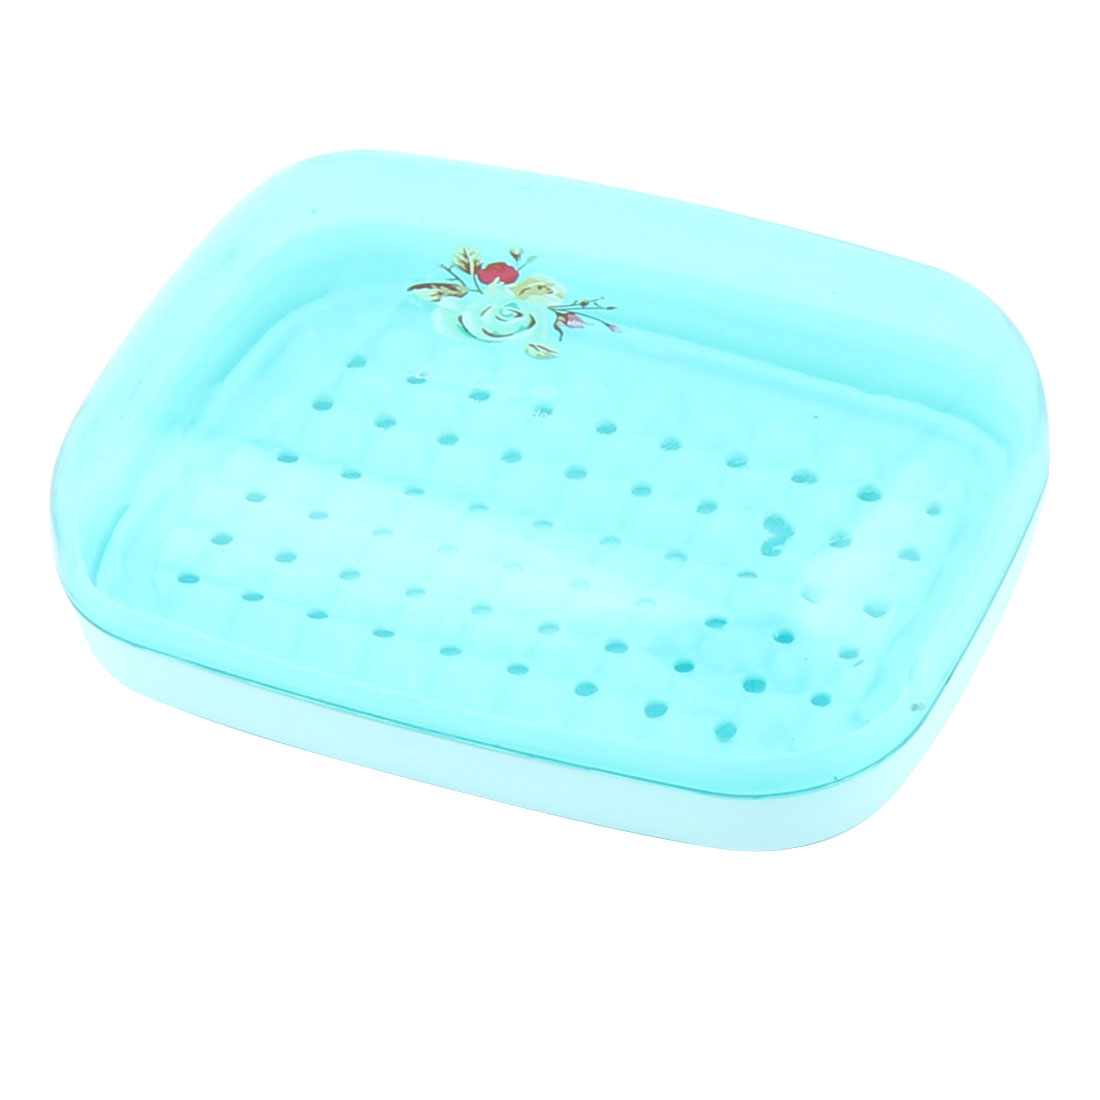 Home Bathroom Hollow Out Base Flower Prints PP Soap Box Holder Case Container Blue